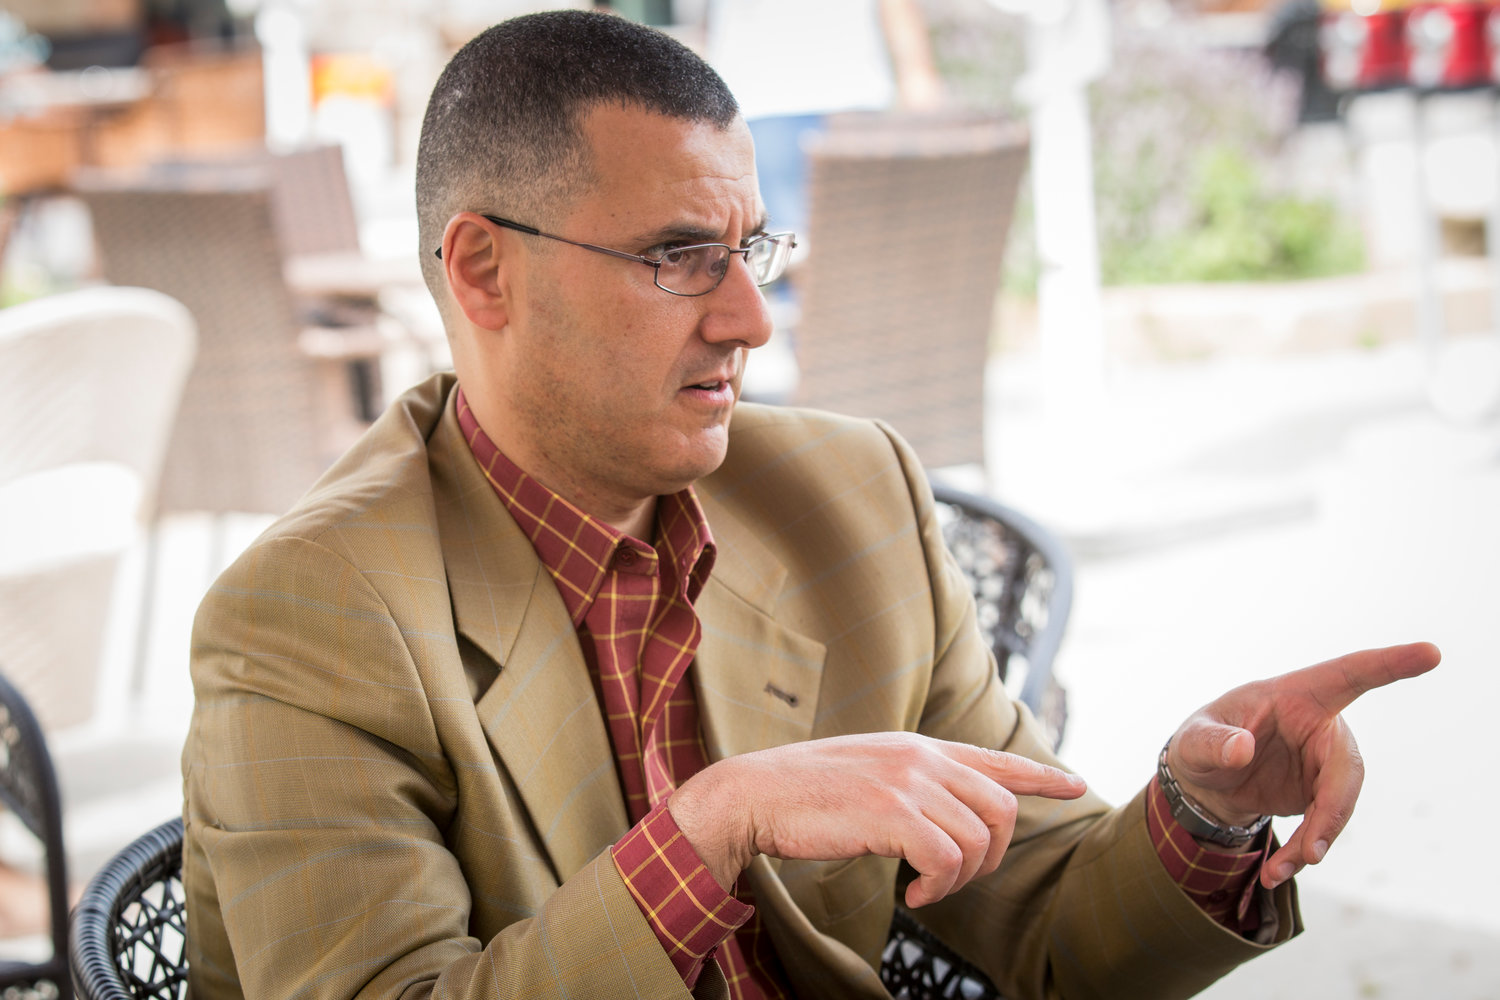 Omar Barghouti speaks about BDS on June 3, 2014 in Acre, Israel.